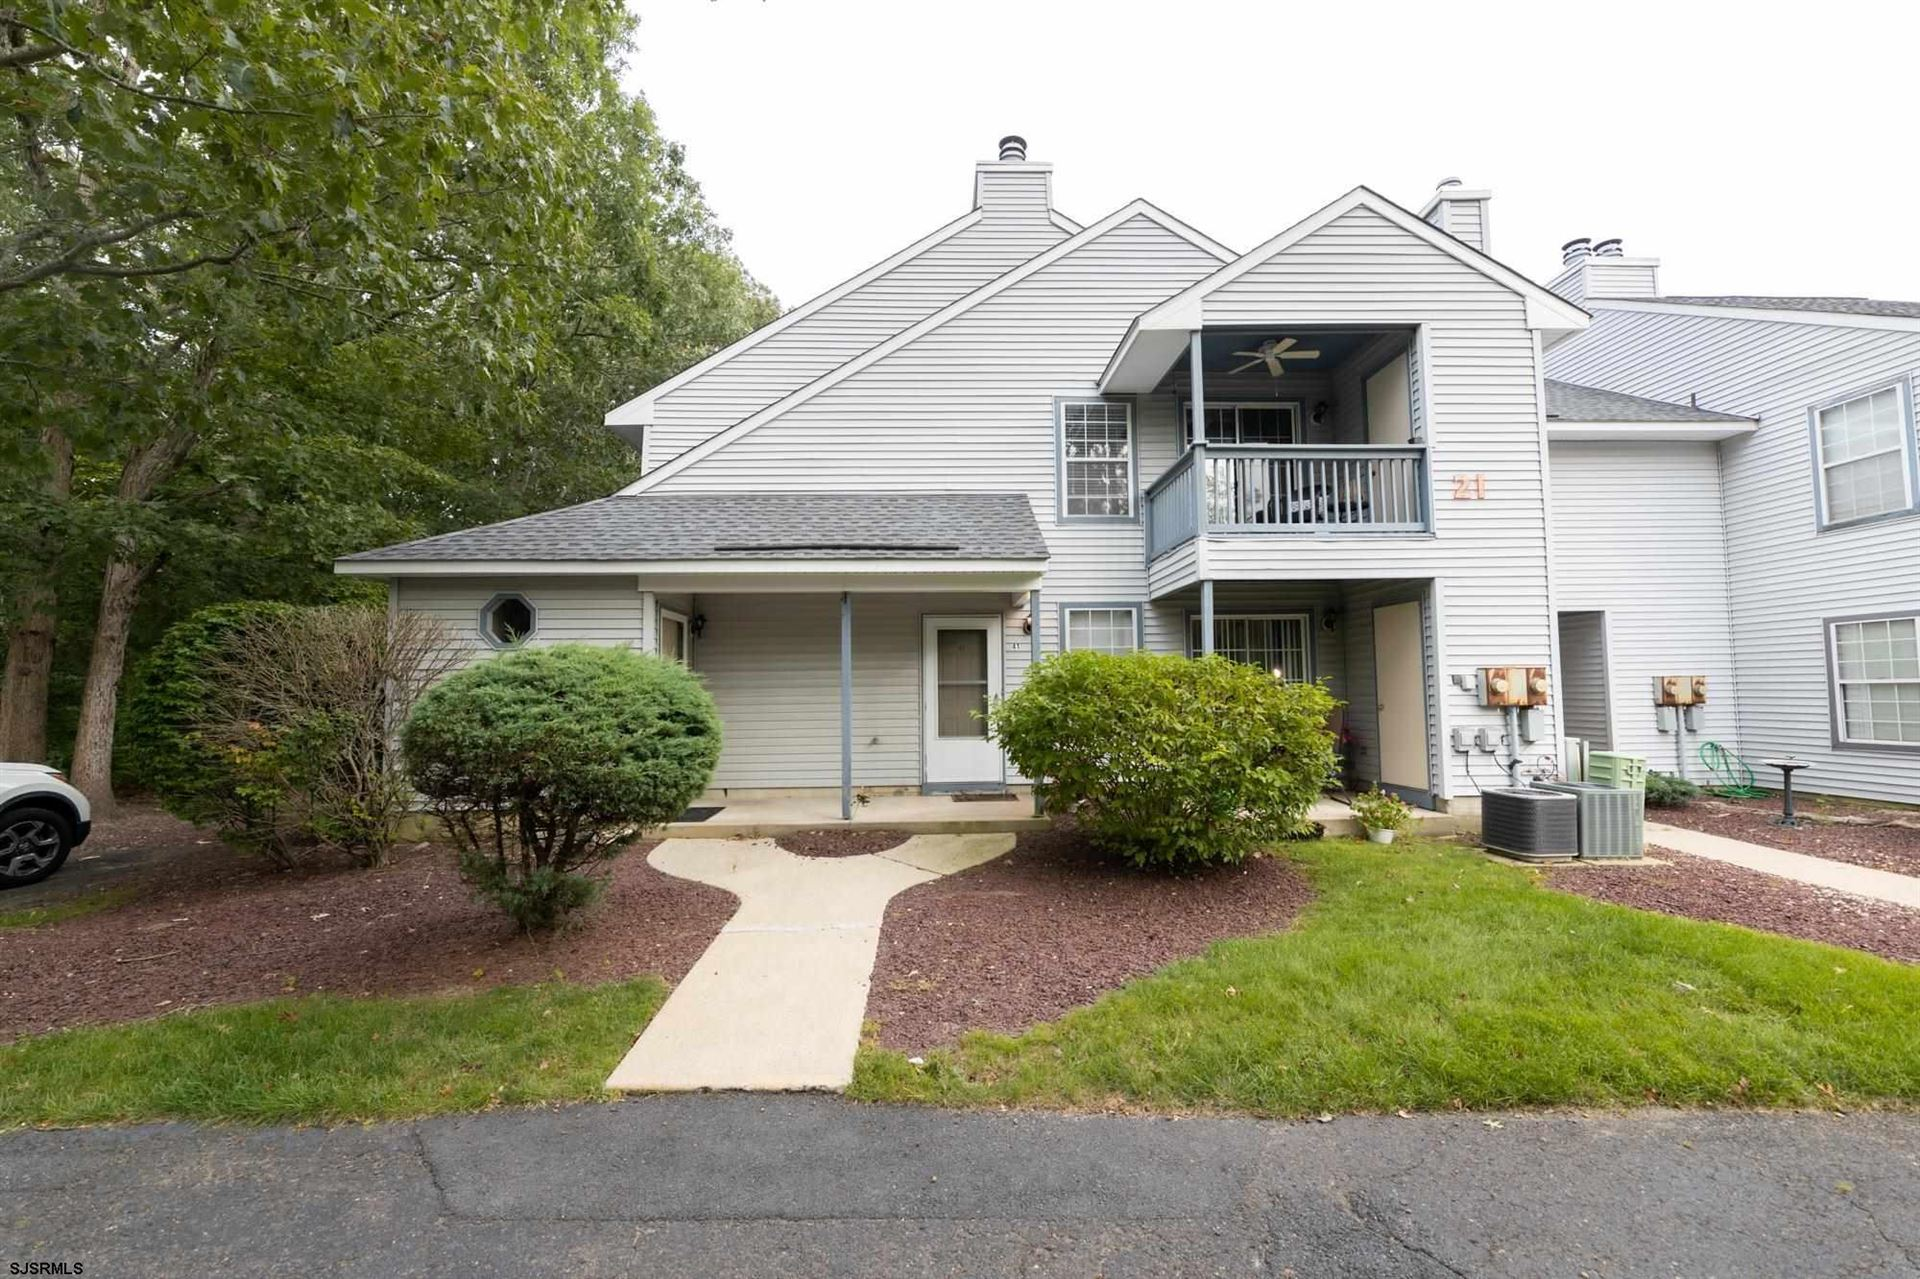 43 Waterview Dr, Galloway, NJ 08205 - #: 555336